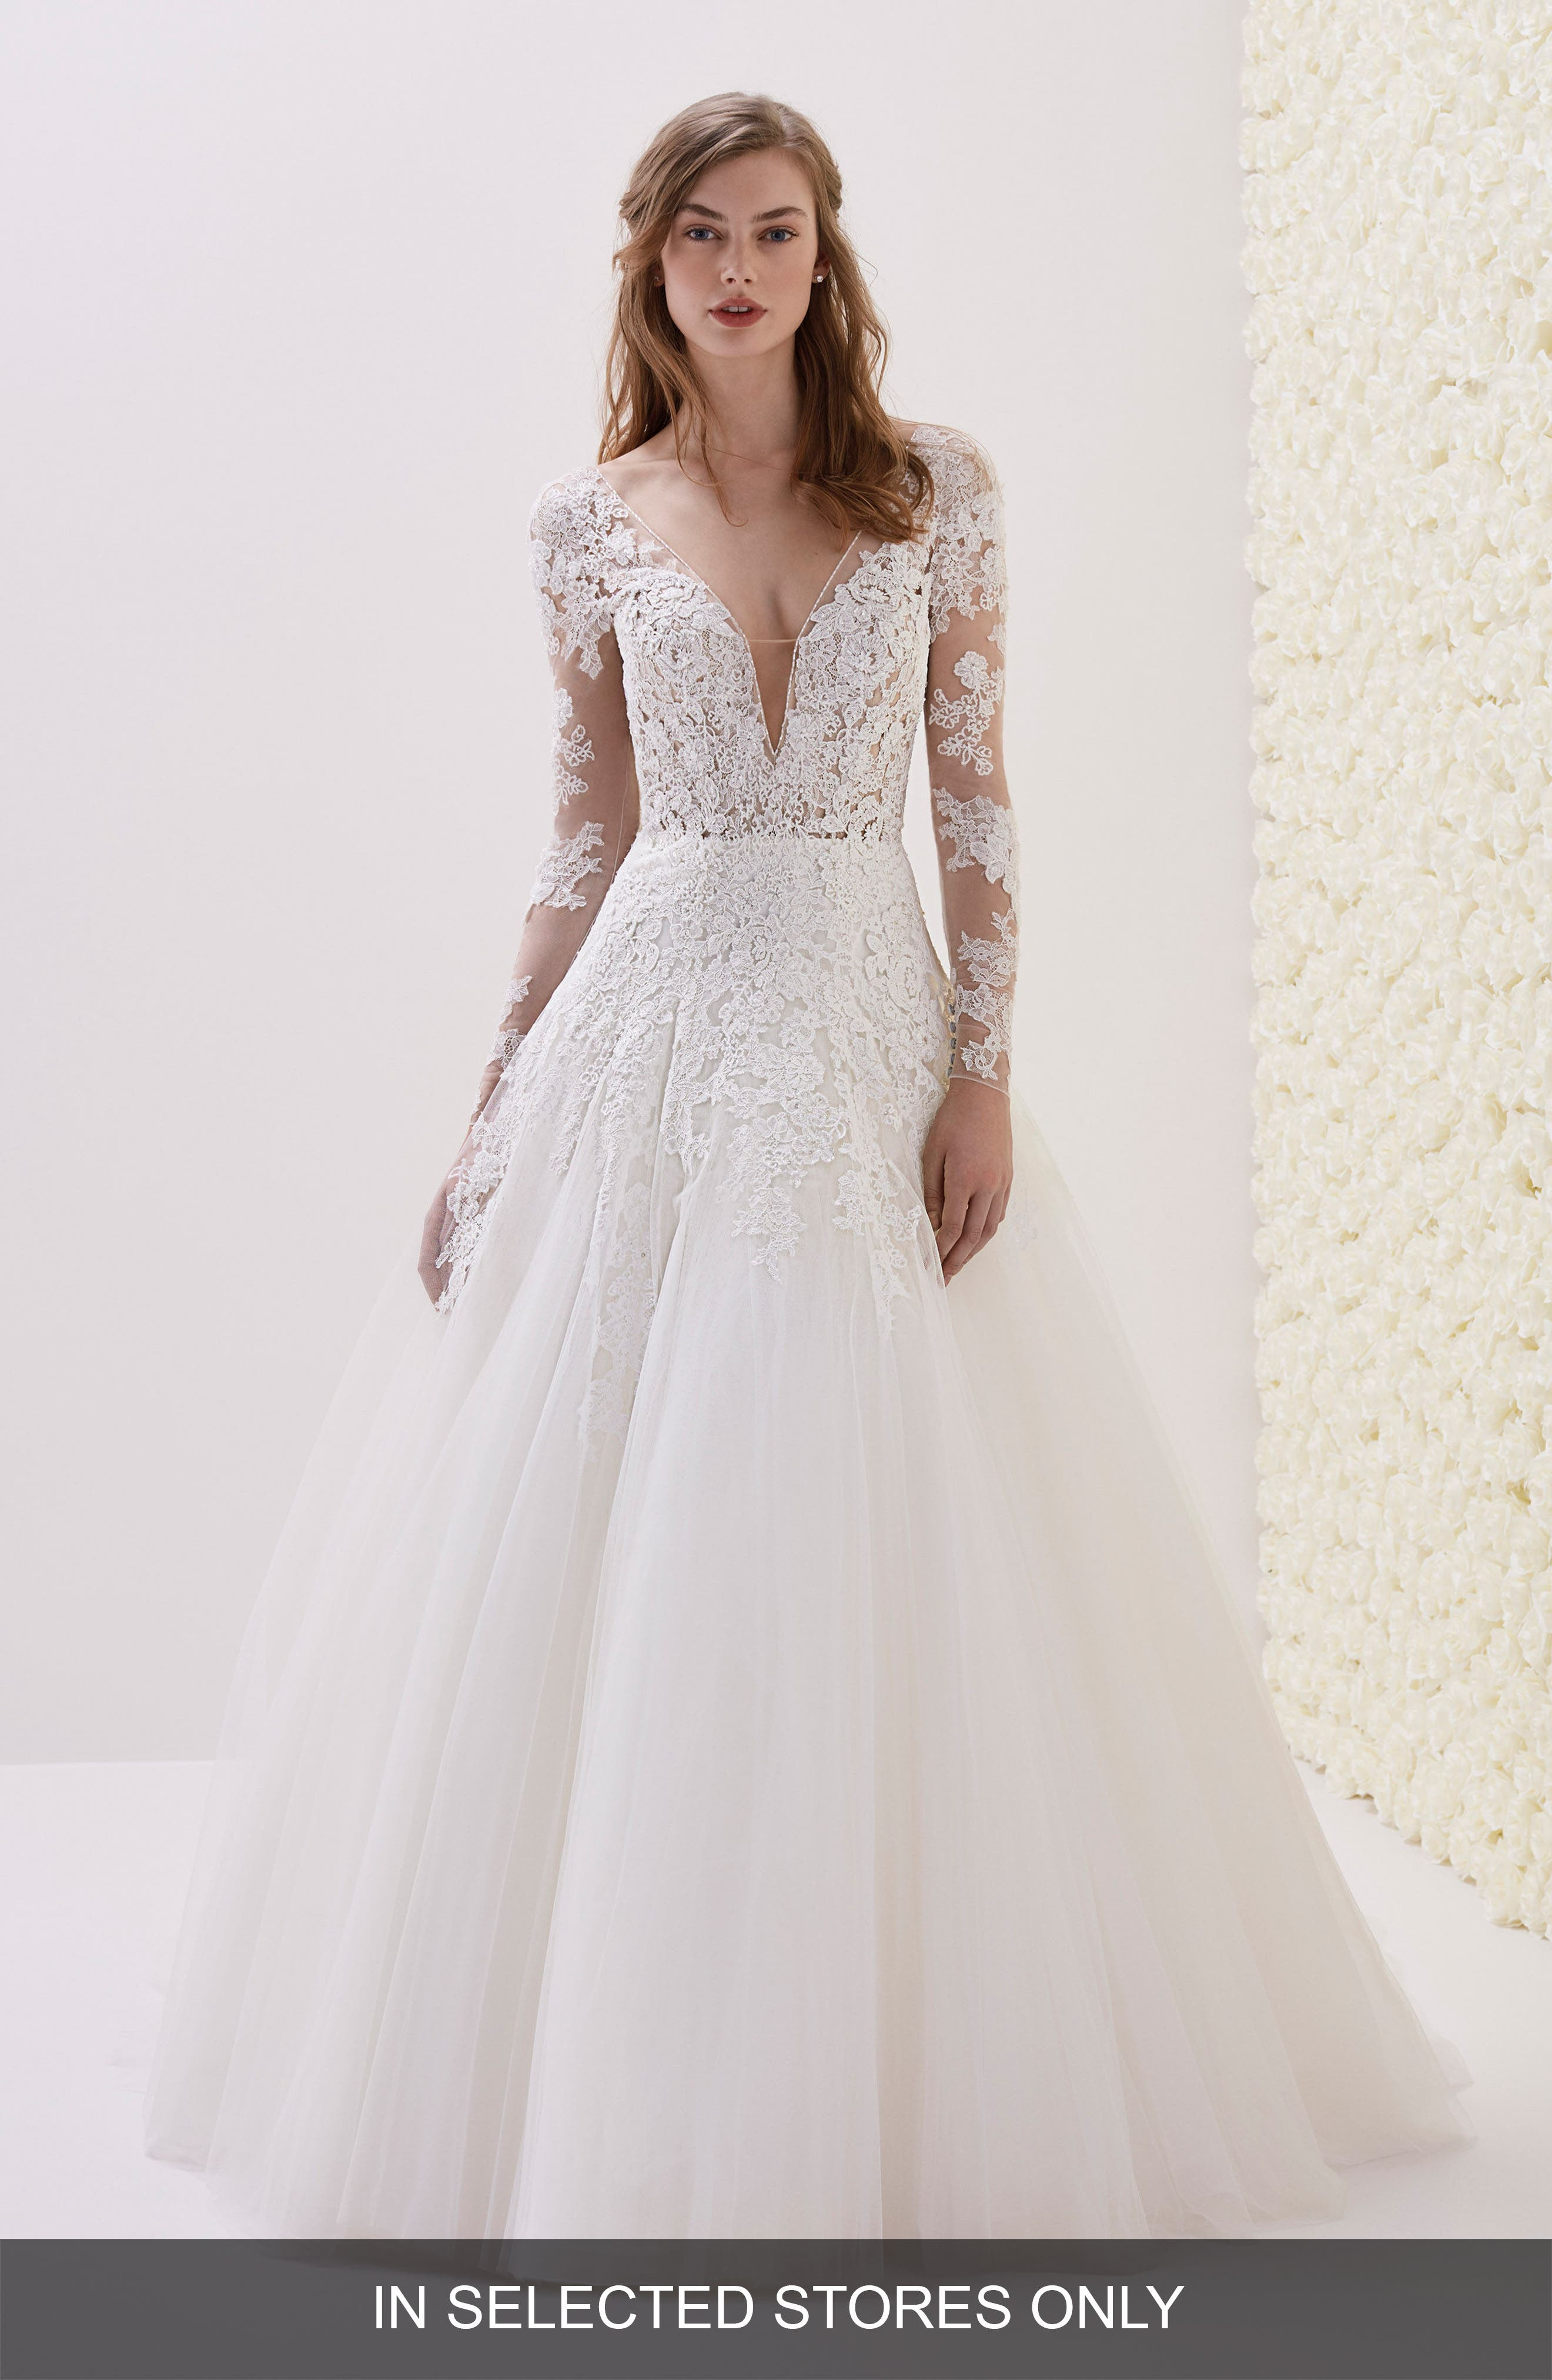 Elwe Lace Illusion Ballgown,                         Main,                         color, Off Wh/ Crst/ Nd